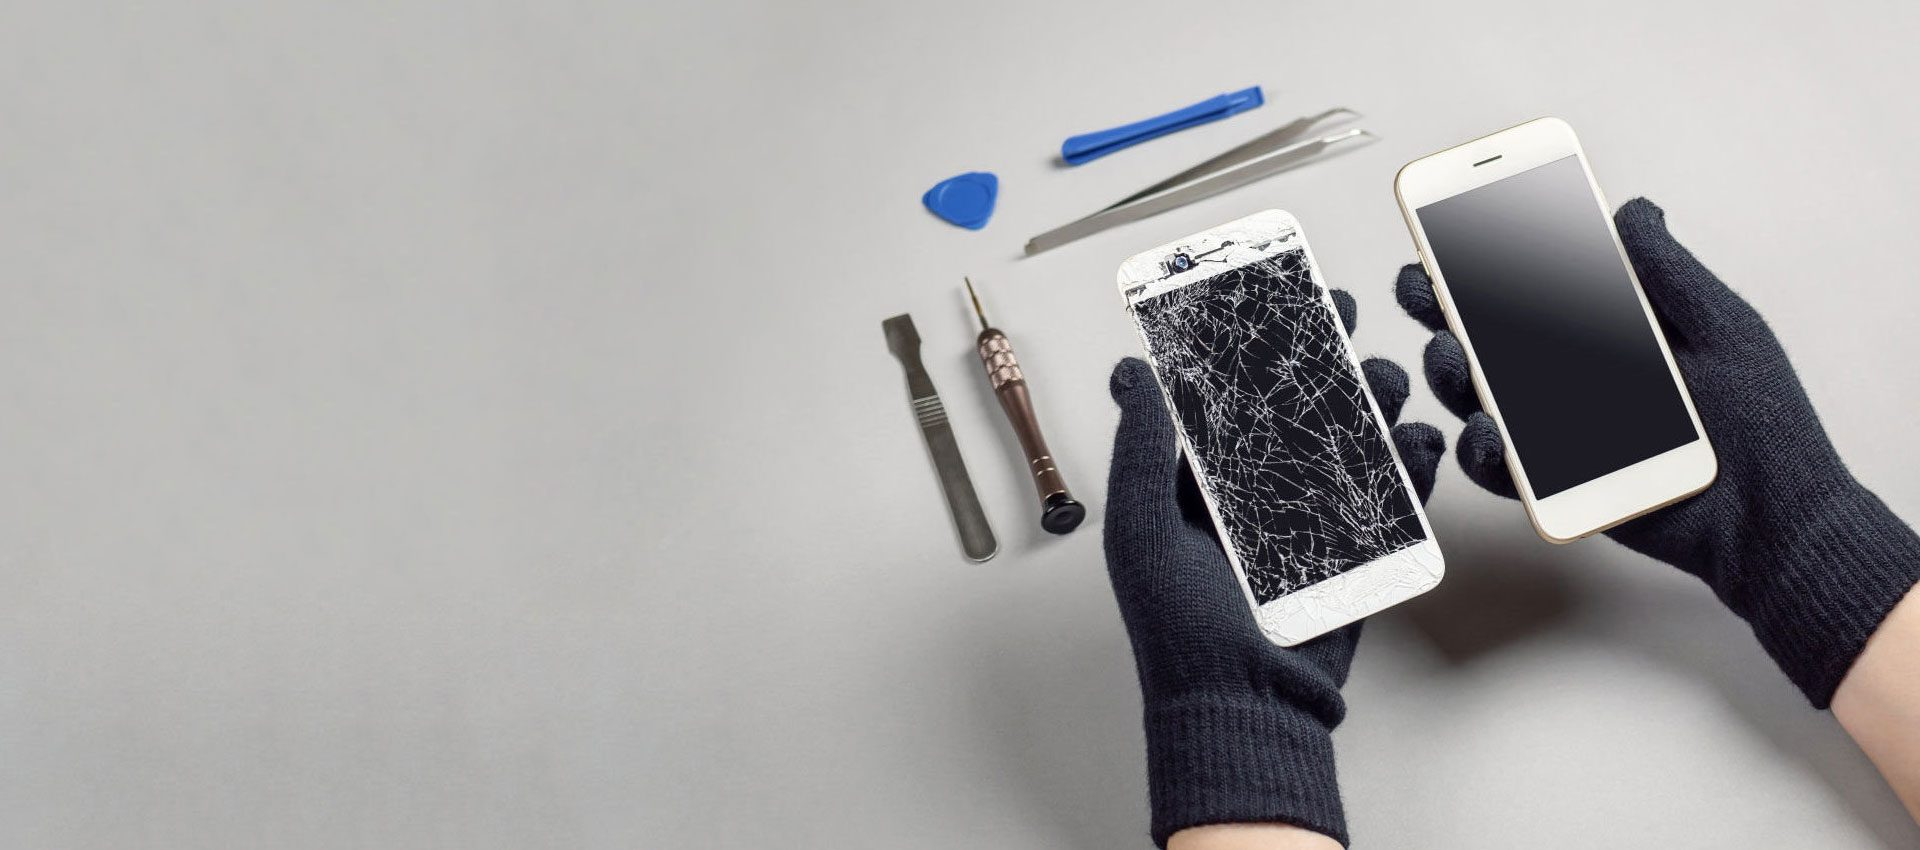 Fast Repair Your Smartphones